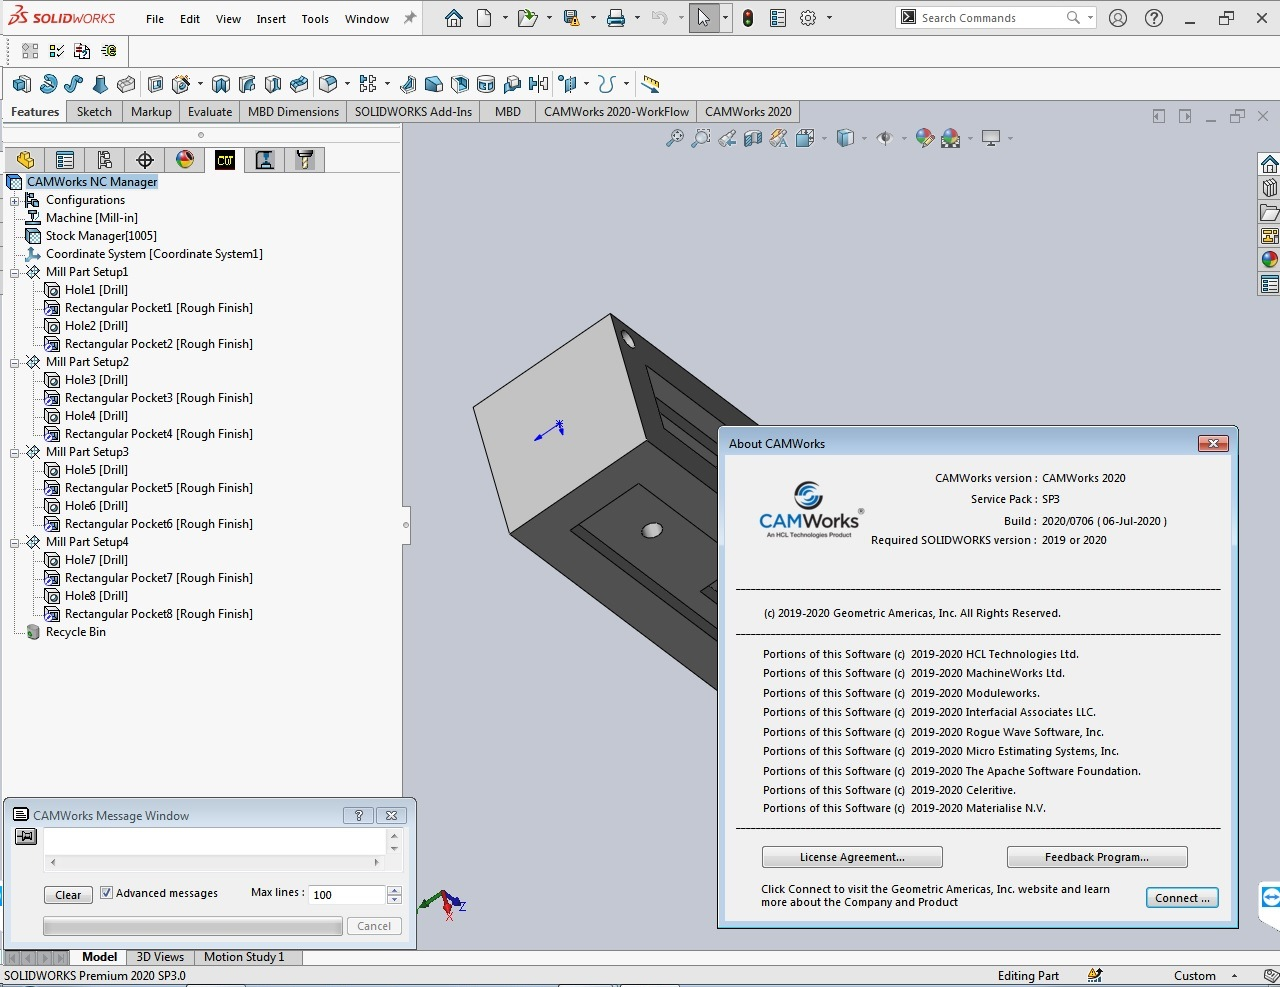 Working with CAMWorks 2020 SP3 Build 2020.07.06 for solidworks 2020 sp3.0